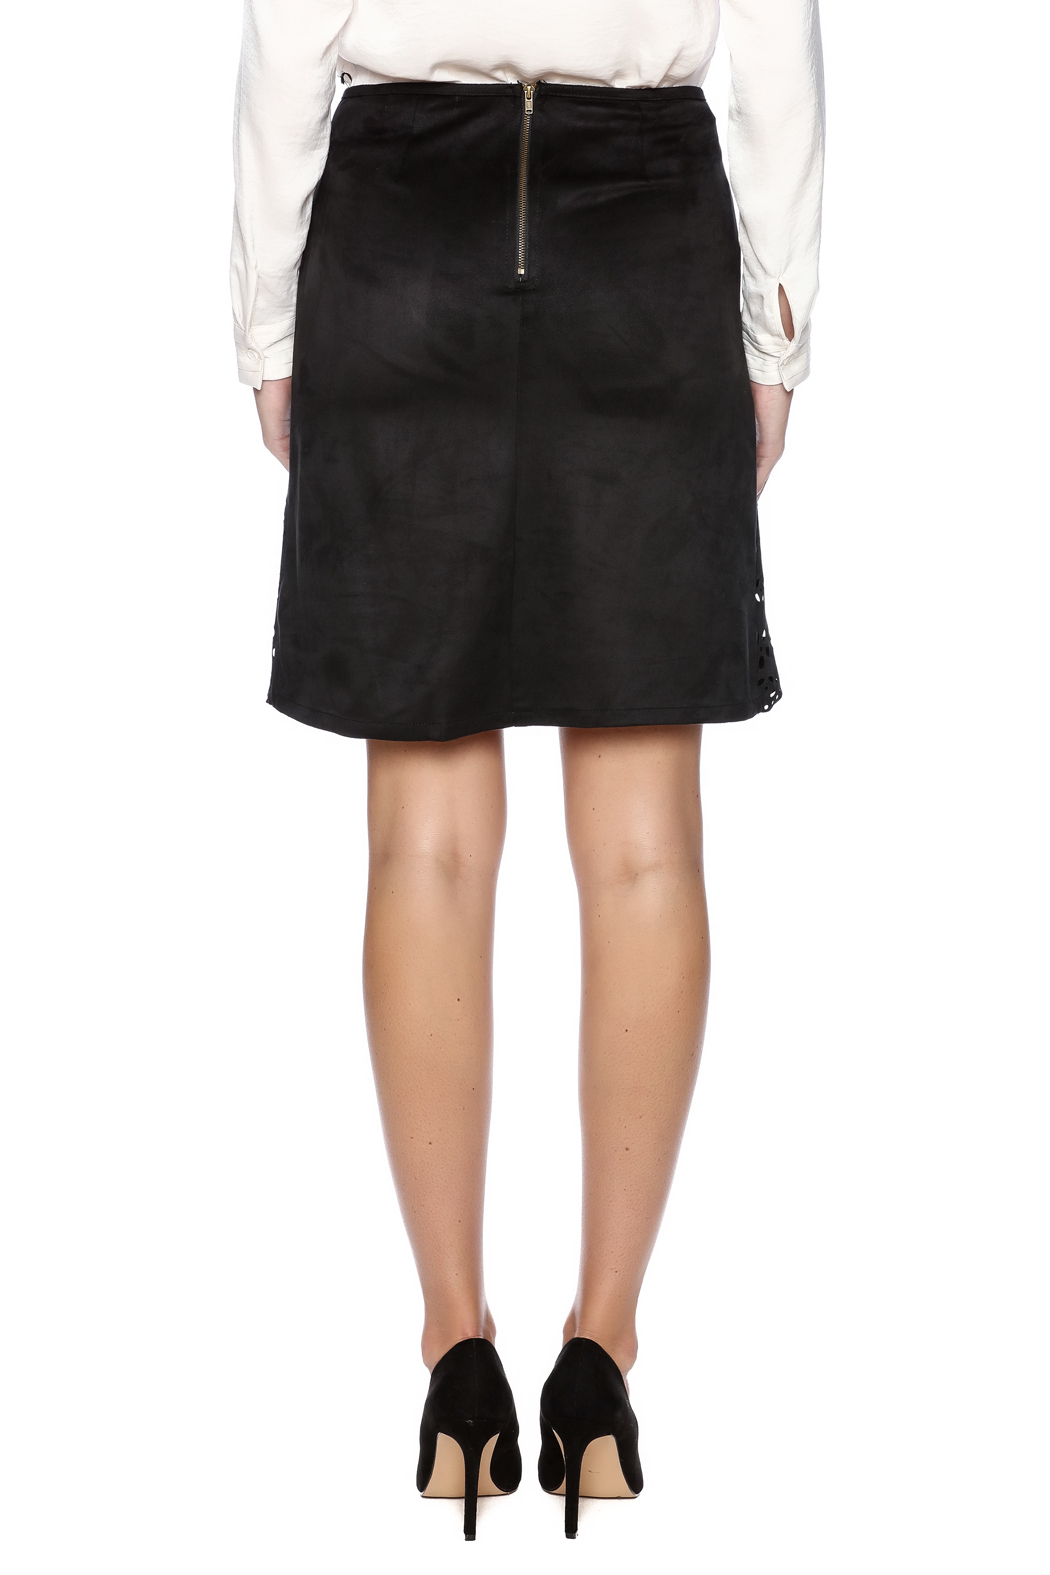 Ya Los Angeles Cut Out Design Skirt - Back Cropped Image